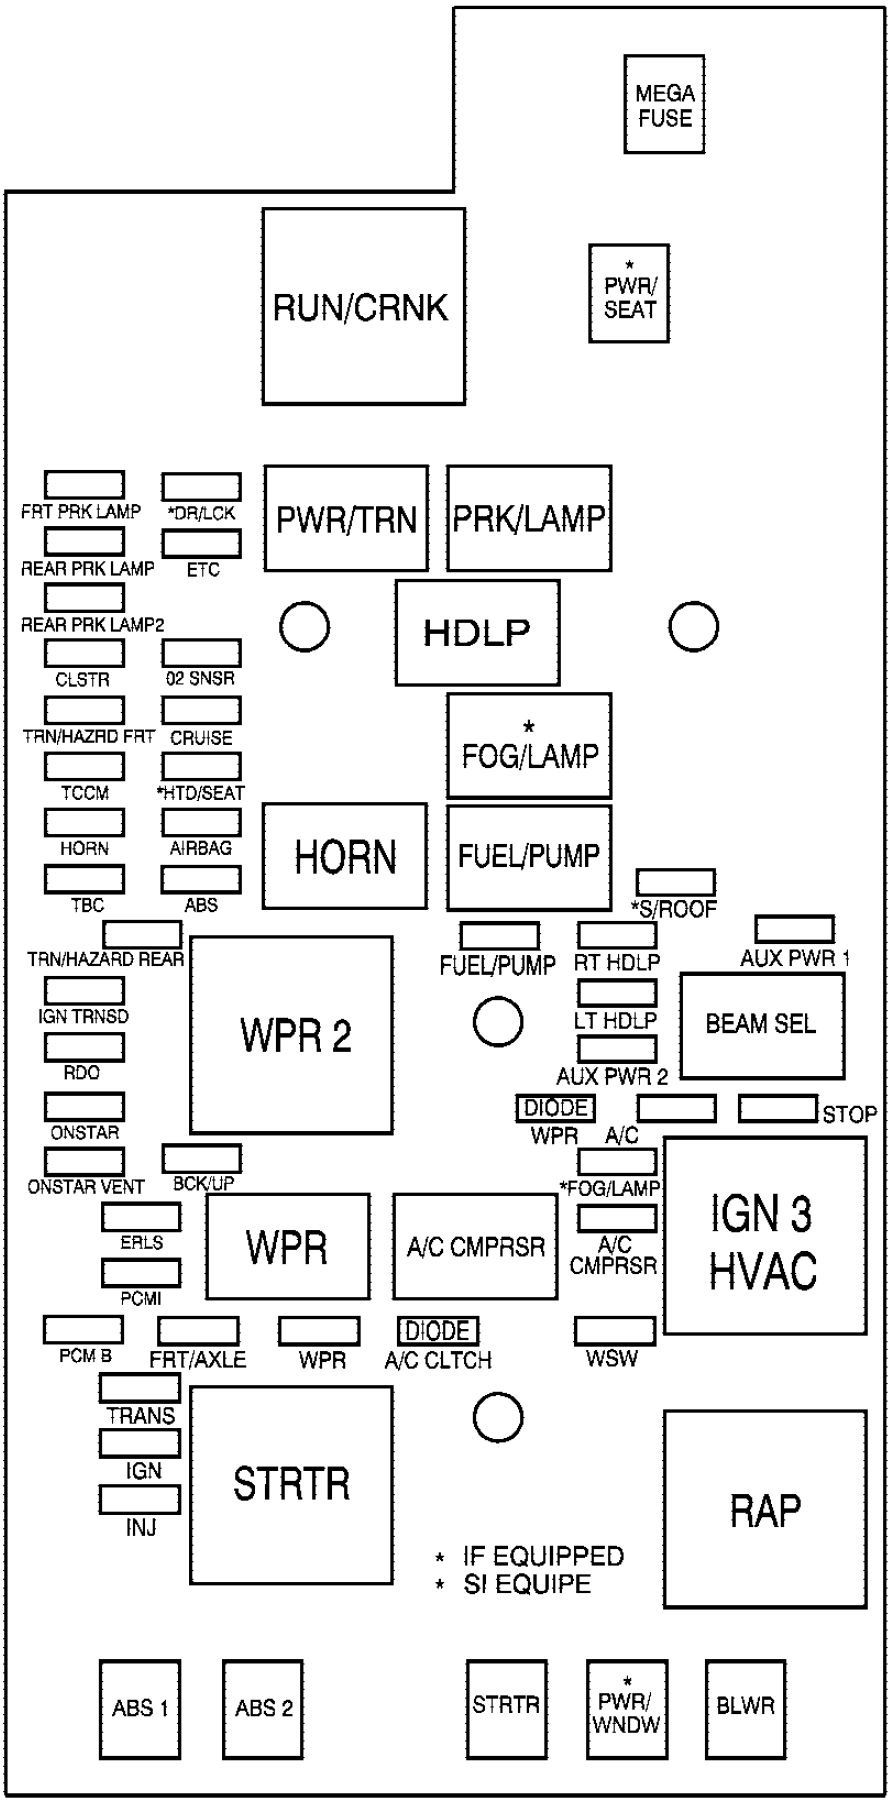 fuse diagram for 2004 gmc sierra